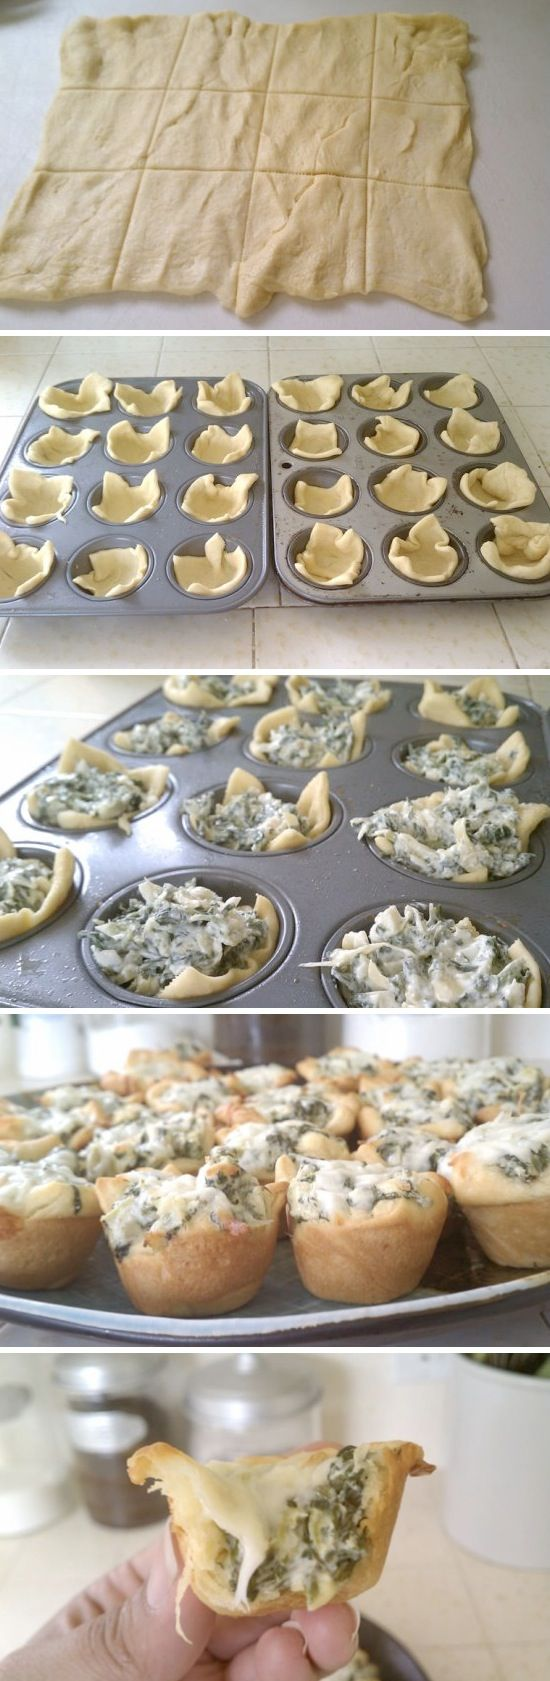 Spinach Artichoke Bites- easy appetizer or meal. Basically crescent roll with spinach artichoke dip.